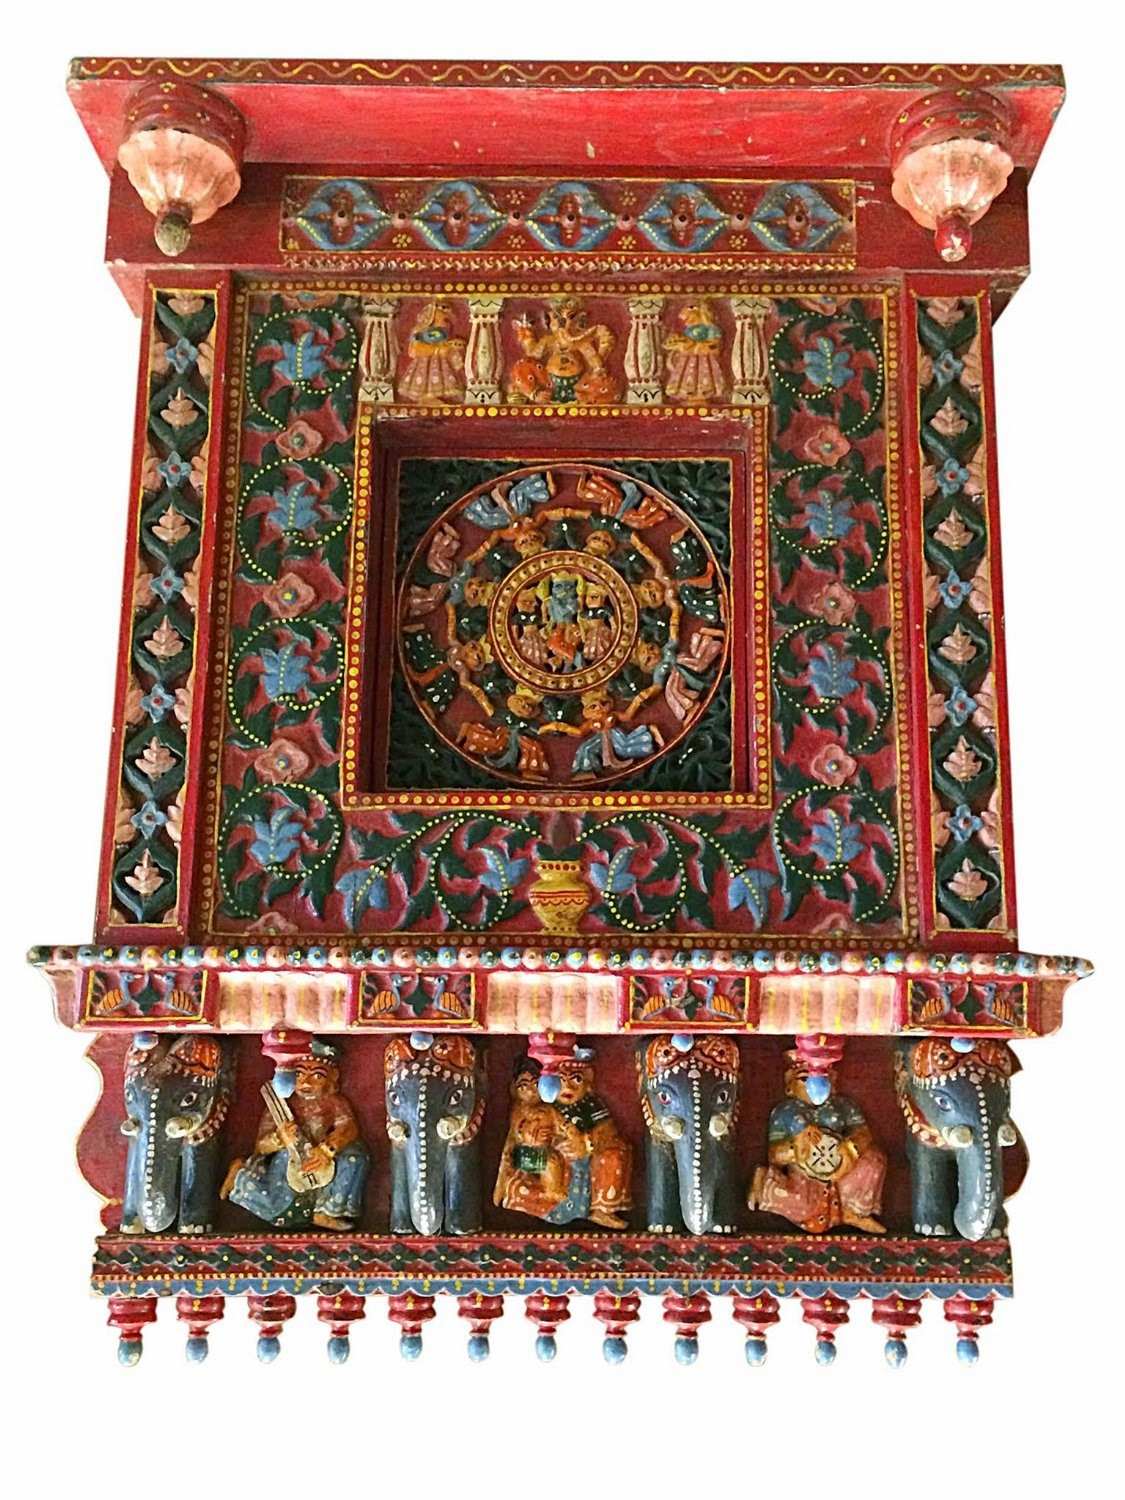 http://www.amazon.com/Antique-Indian-Wall-Sculpture-Meditation/dp/B00RMOEIL4/ref=sr_1_48?m=A1FLPADQPBV8TK&s=merchant-items&ie=UTF8&qid=1427434743&sr=1-48&keywords=home+decorative+item